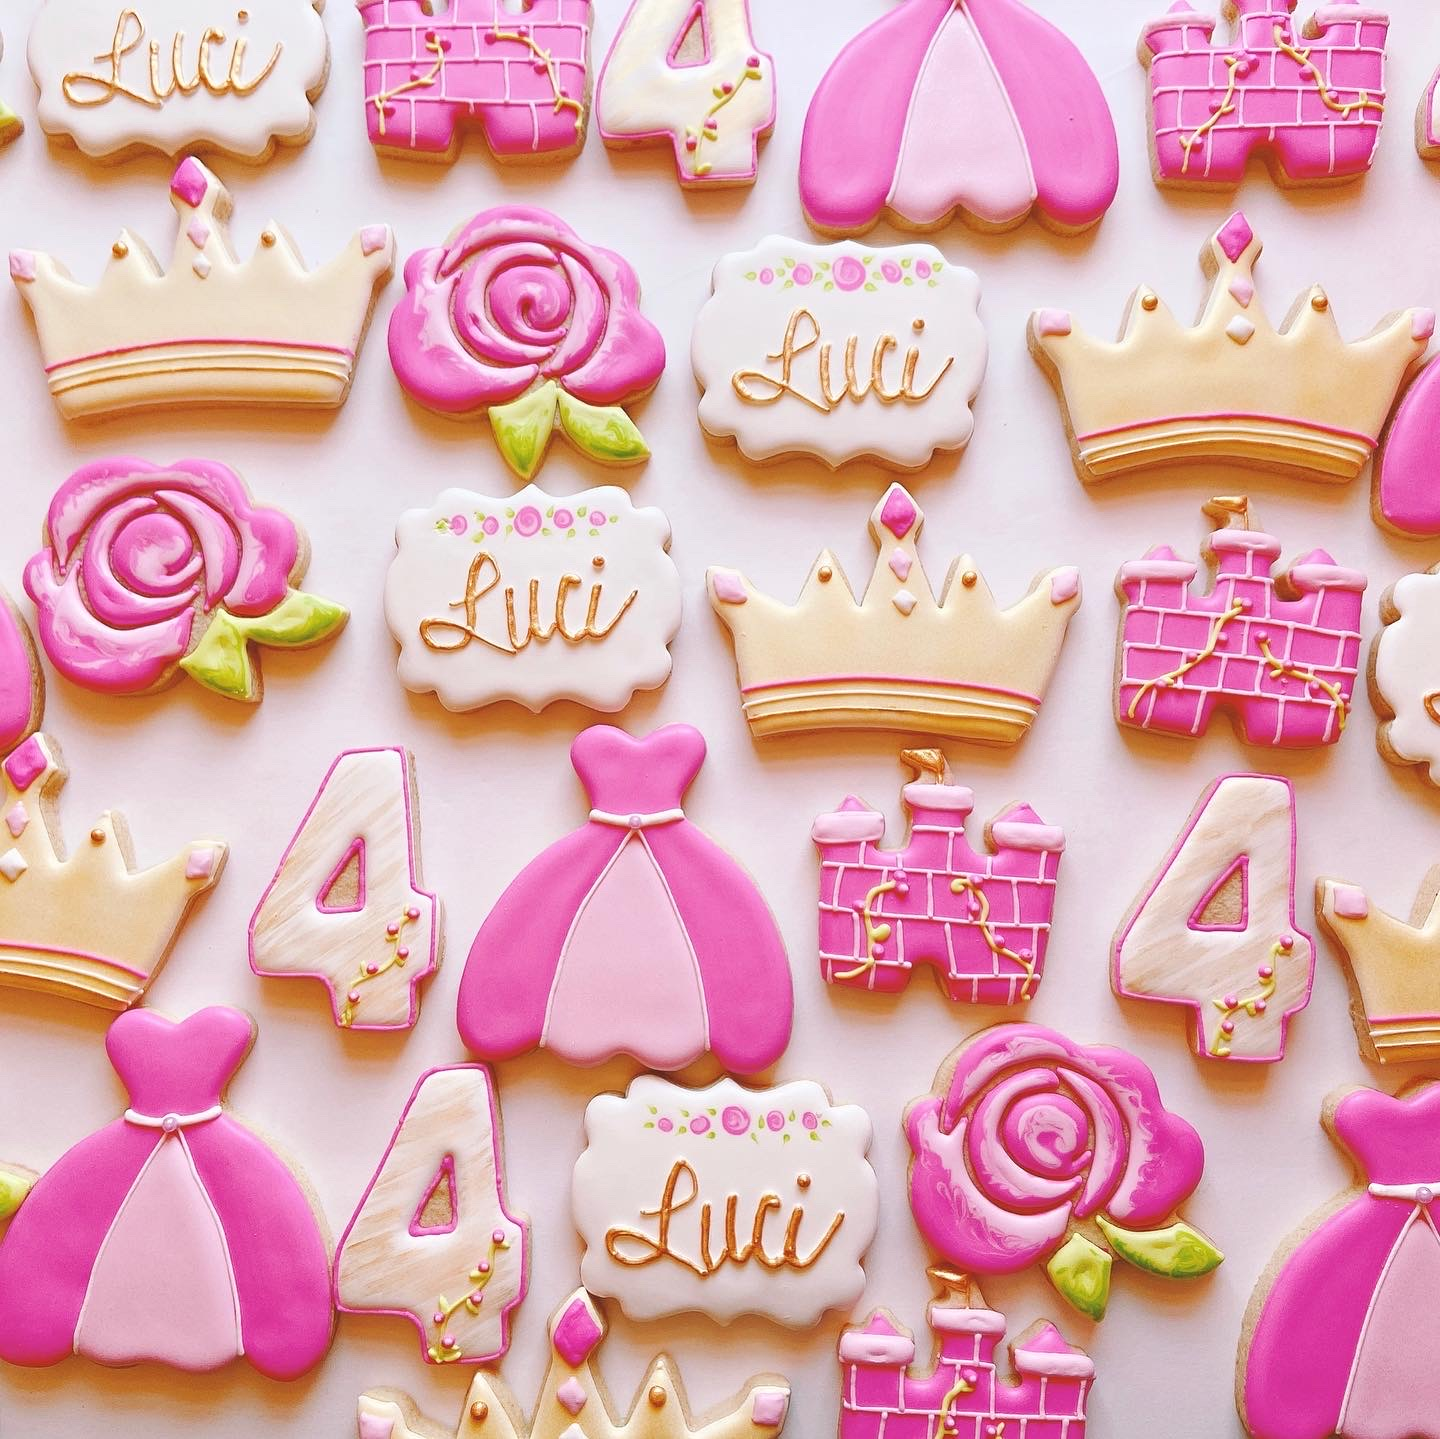 Princess Dress Crown Rose Cookies